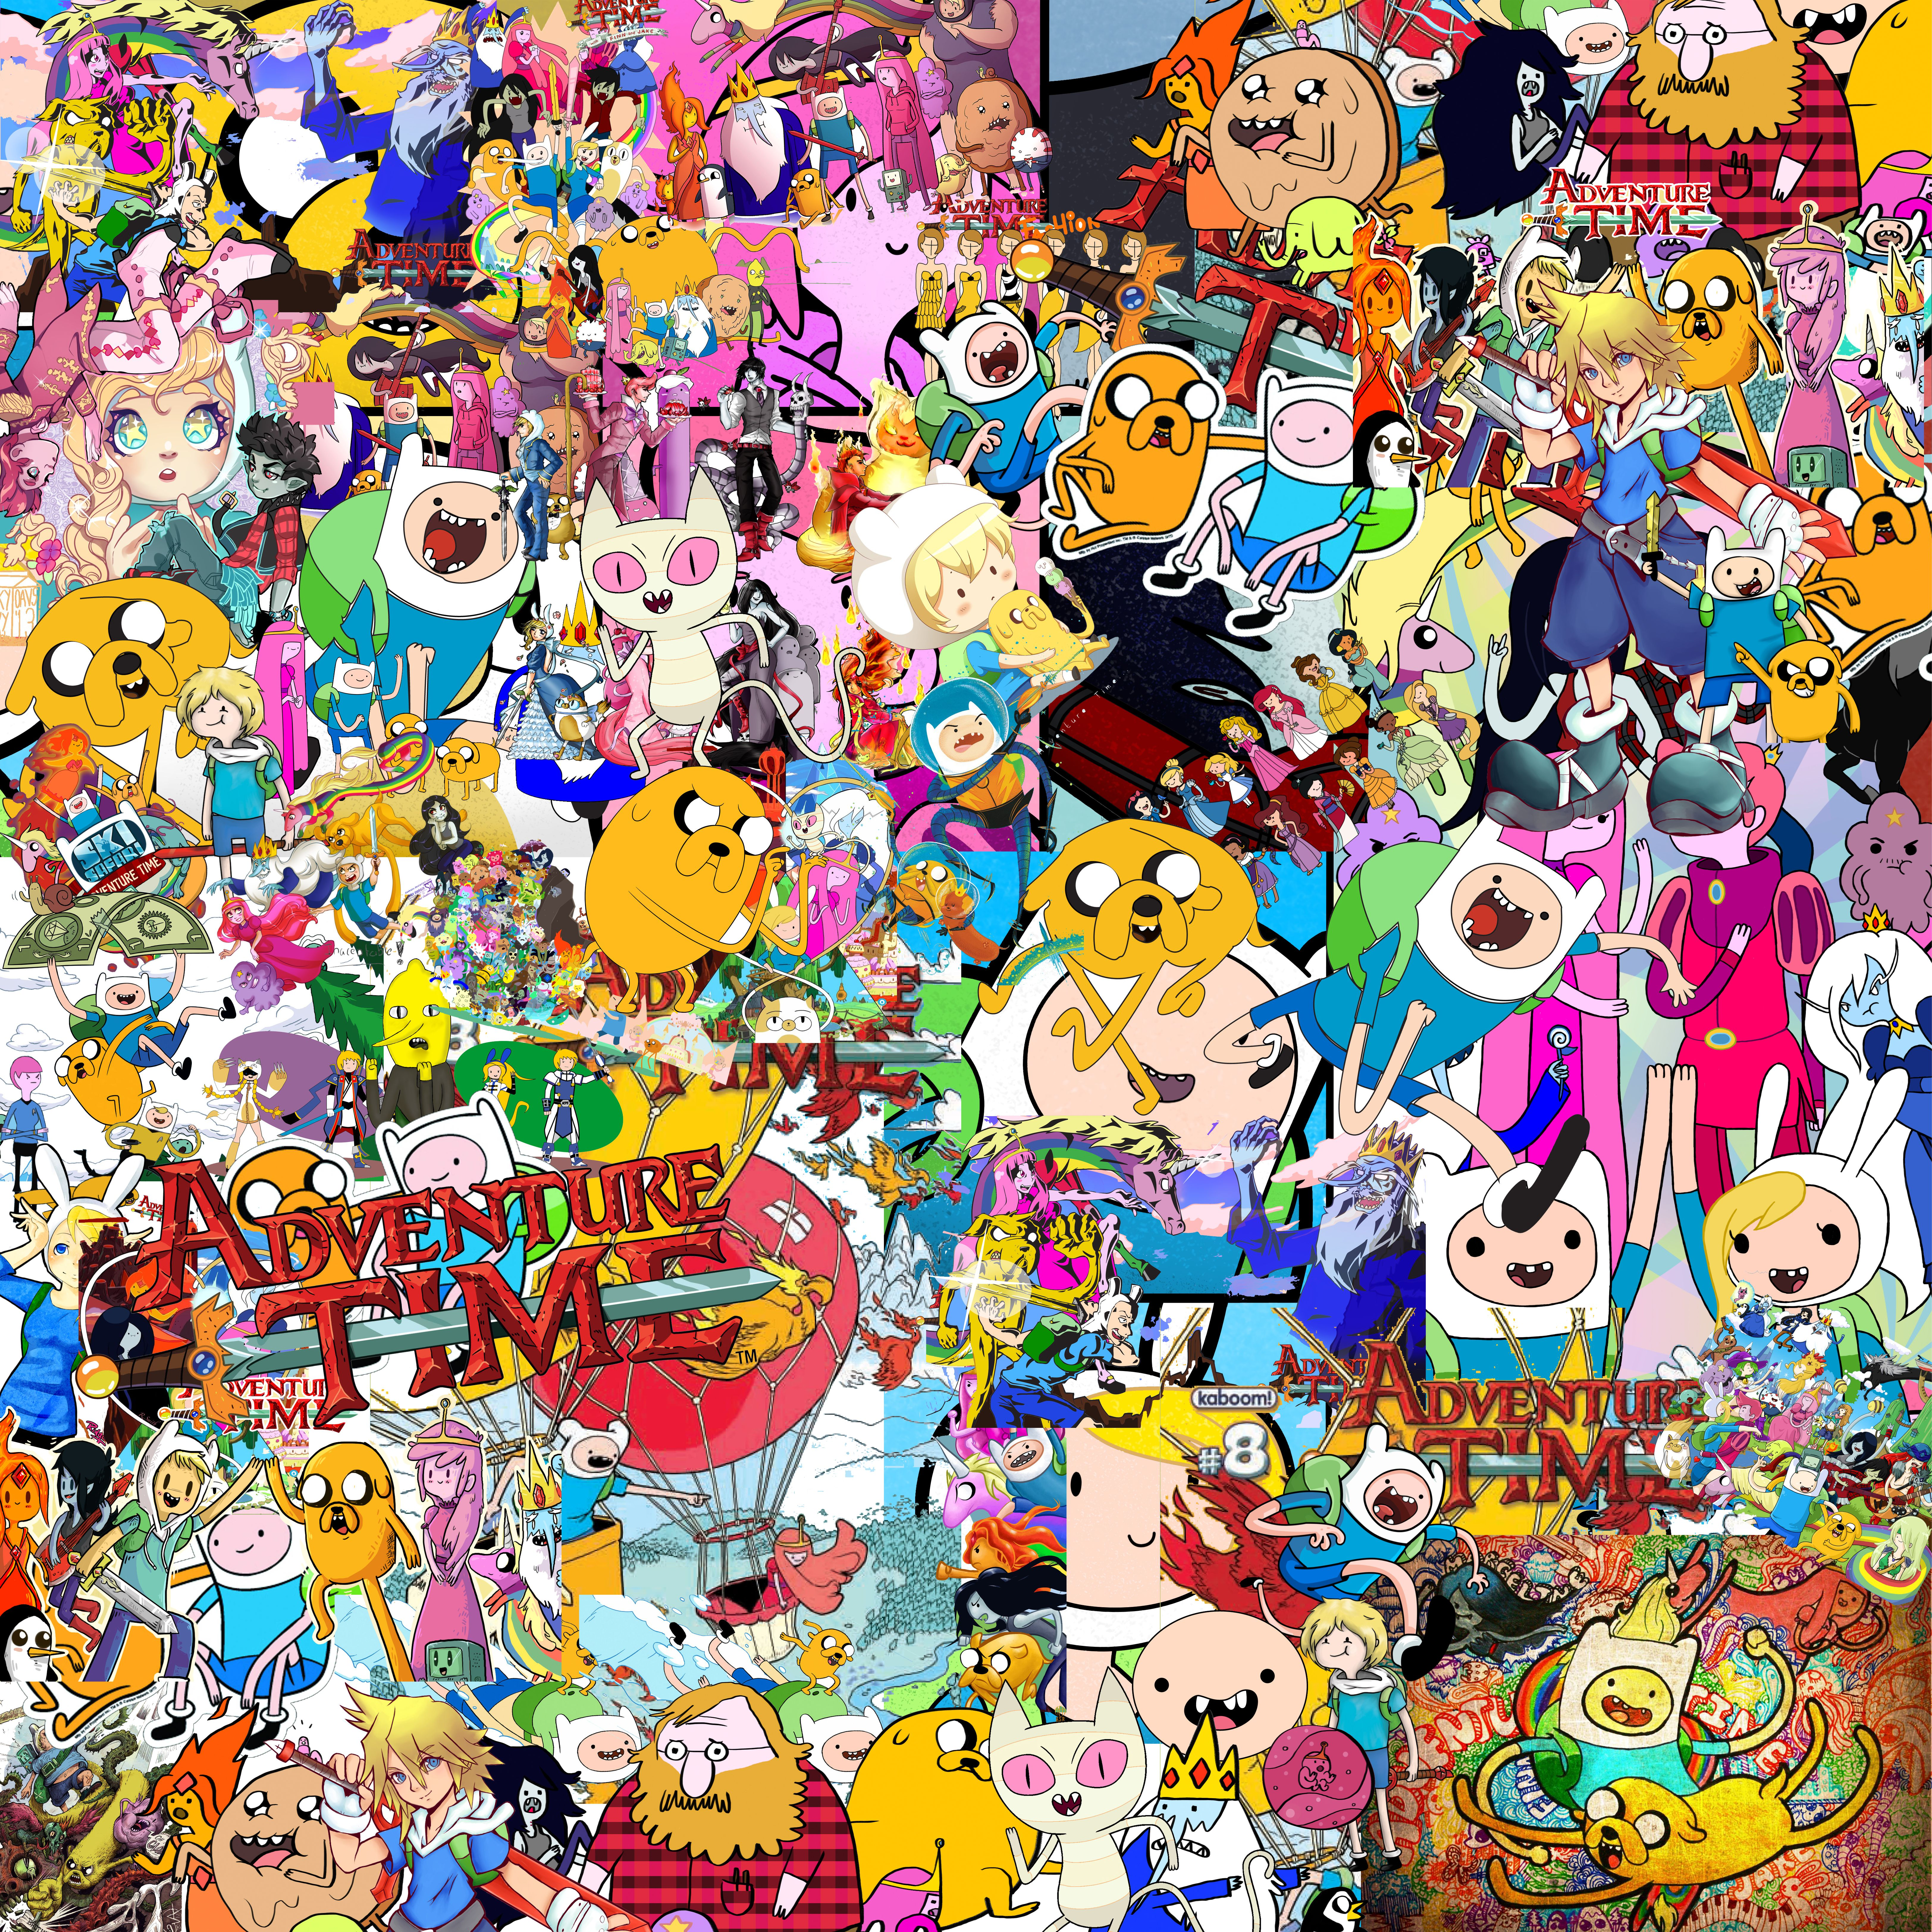 50x50 adventure time